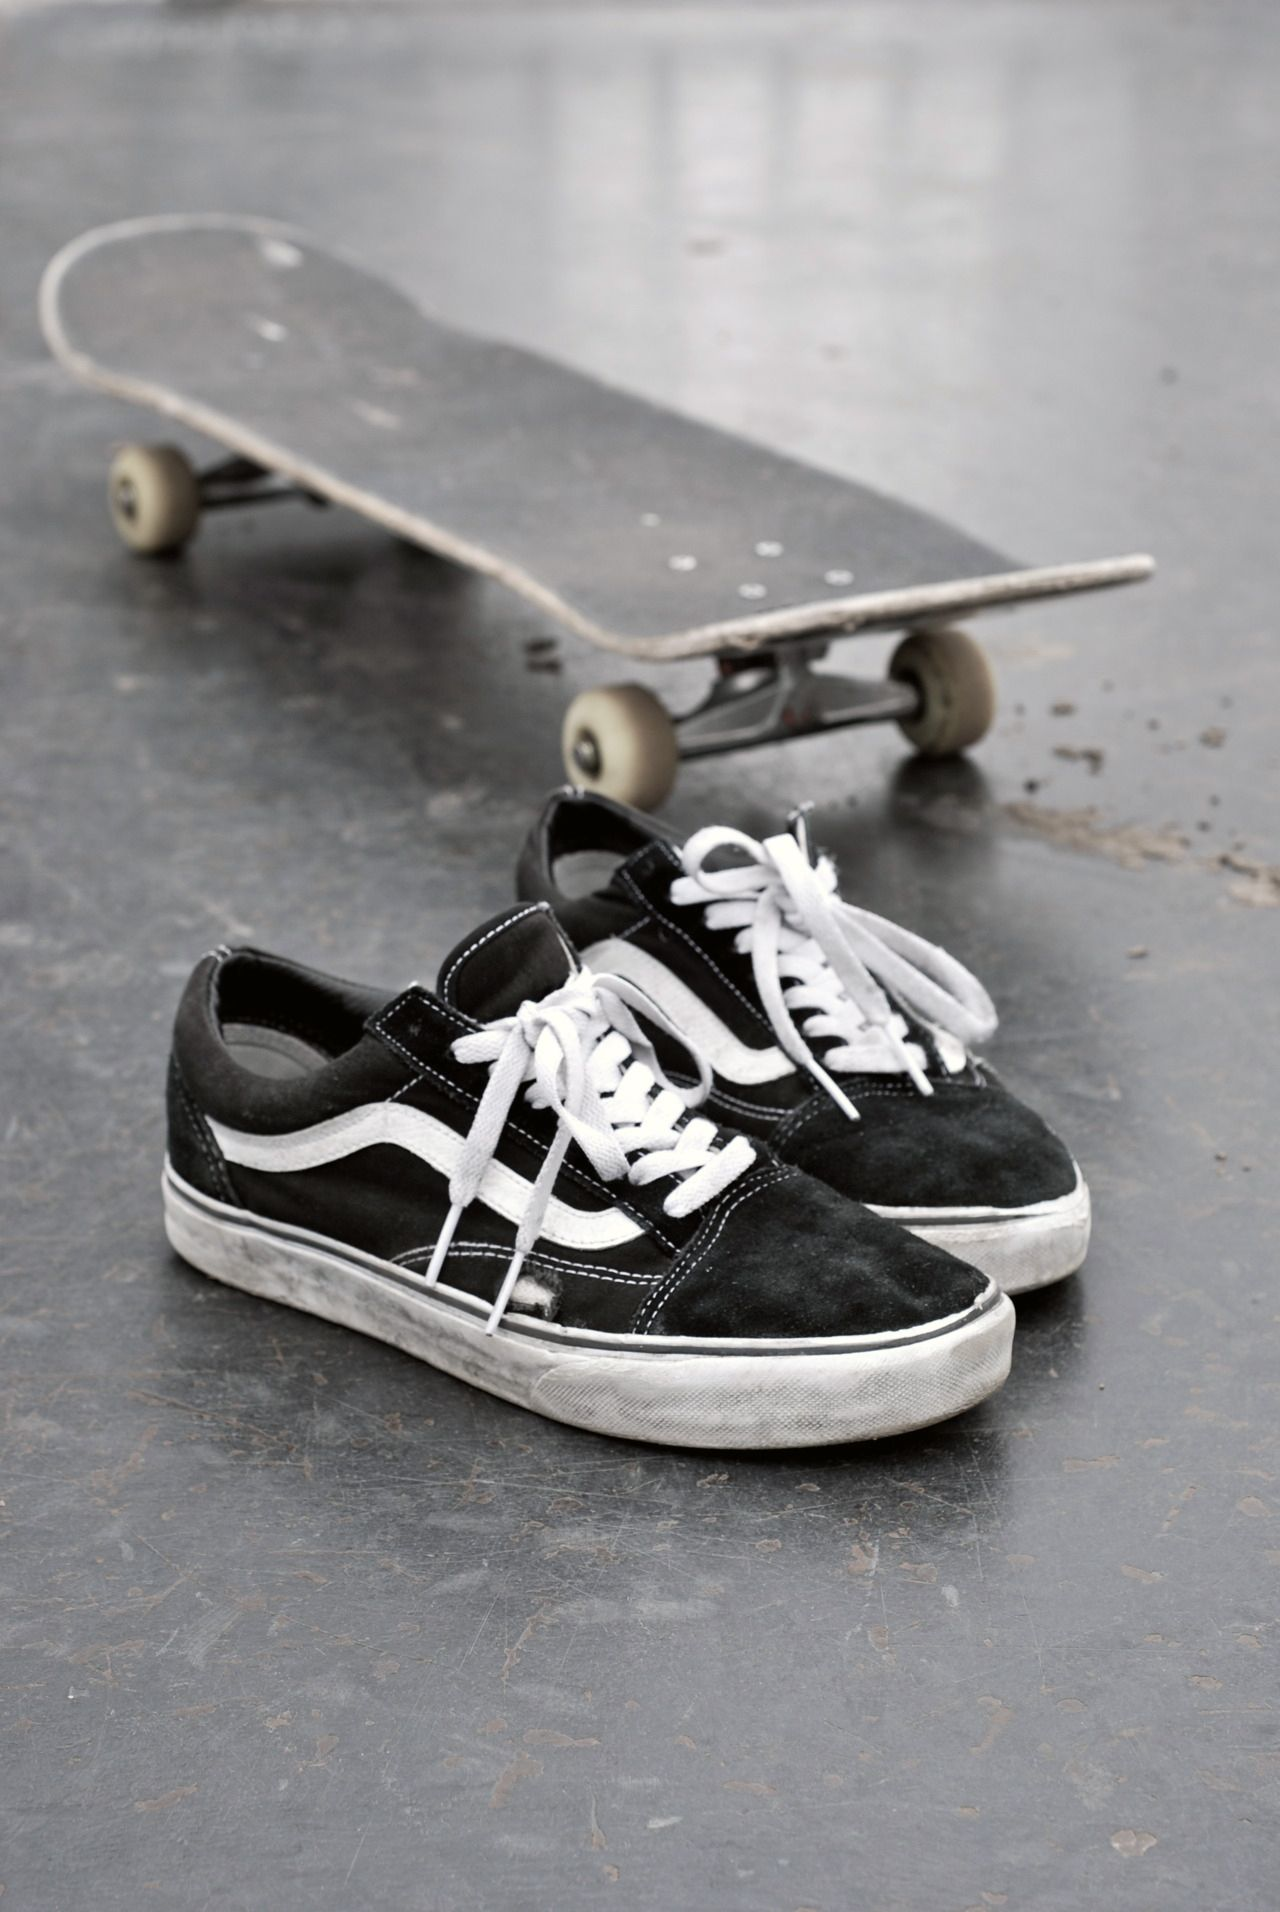 """Hi, I'm Chad, and that's my kicks and my board. I'm best friends with Wari and also with Nezzie, my twin sister. Although I mostly use my BMX I like to skate and Wari and I go down to the skate park at least once a week. I'm kind of smart and my favorite subject is Geography because I like to learn about new places and people. Nezzie, my twin, often teases me about my """"perfect"""" hair and my crush on Callie, one of her friends. But understand, I don't have a crush. Purely a…"""